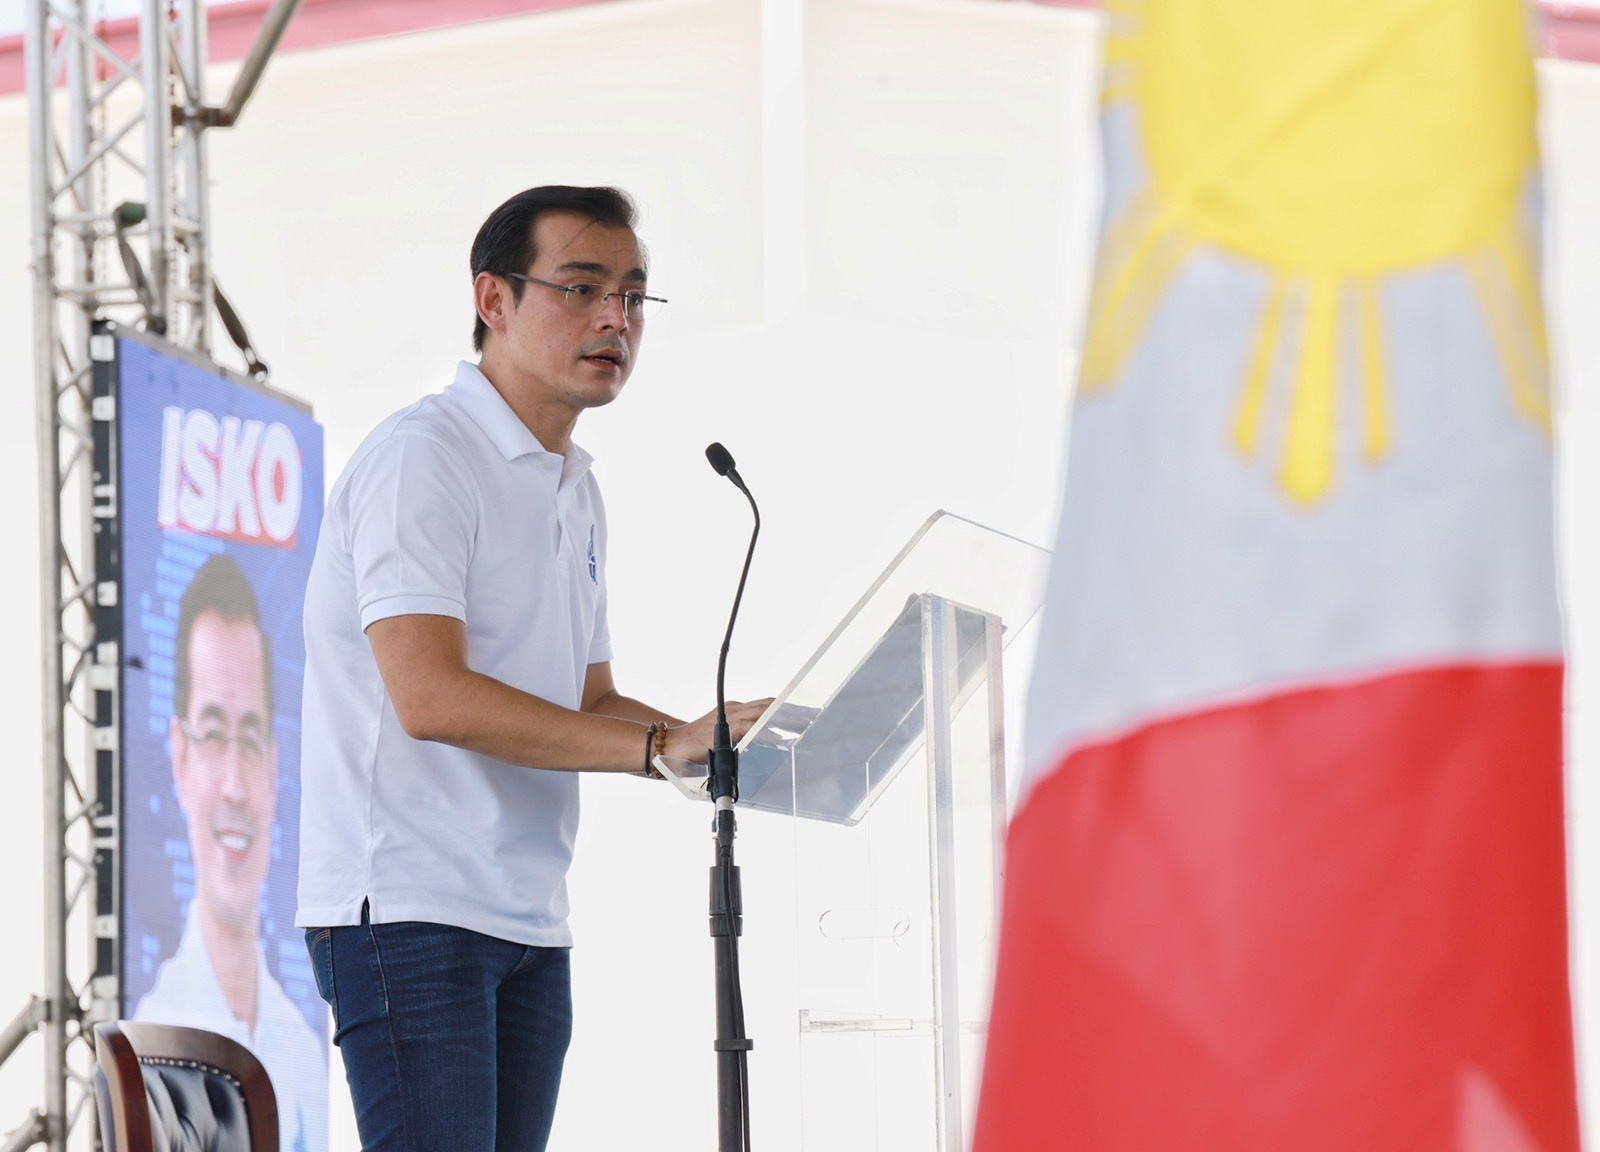 Manila Mayor Francisco 'Isko' Moreno Domagoso speaks during the official announcement of his presidential bid in the 2022 national elections in a poor community in Baseco, Manila, Philippines, September 22, 2021. Manila Public Information Office/Handout via REUTERS